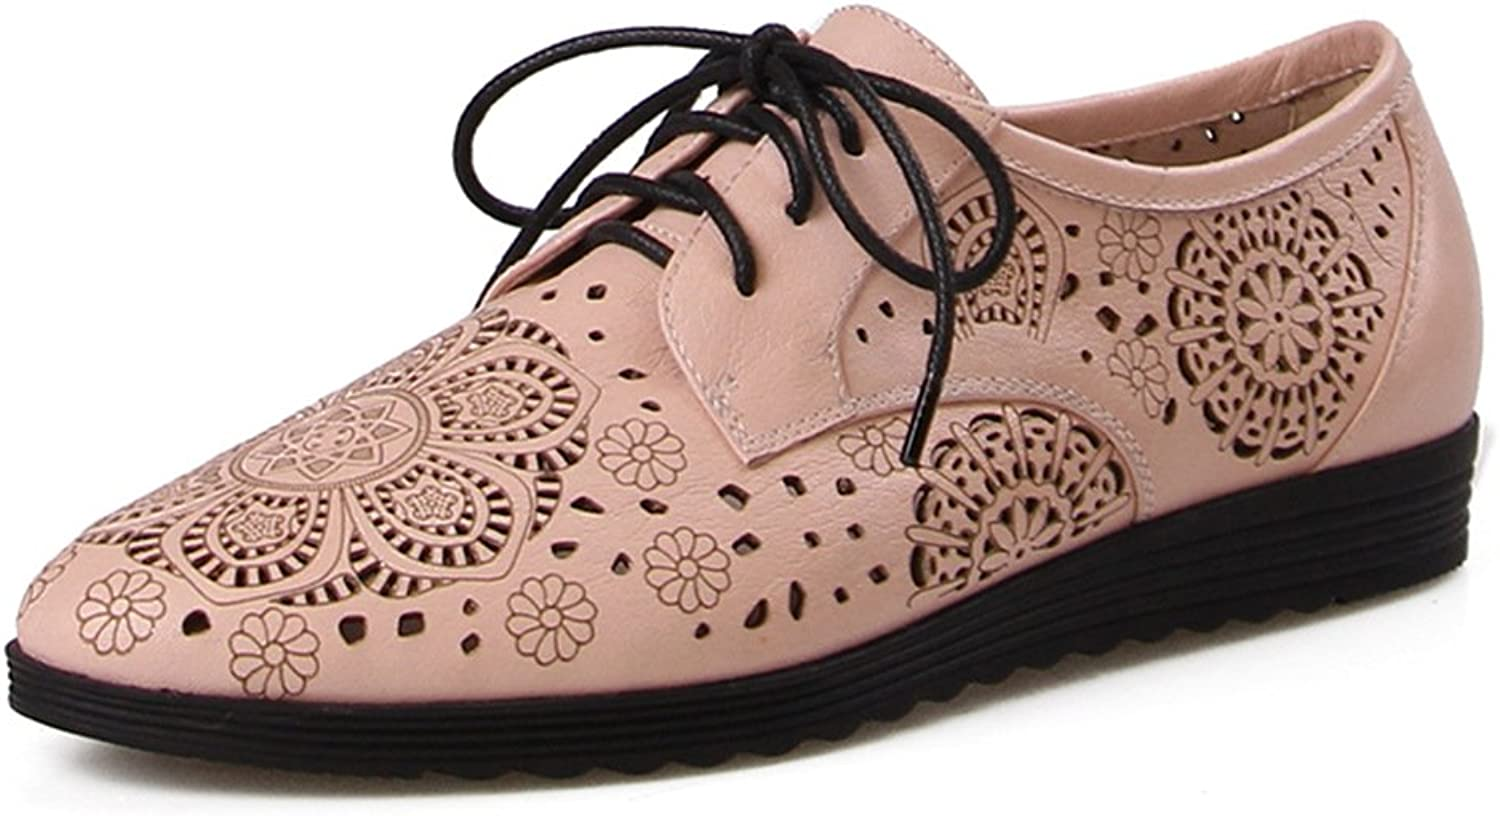 Full Genuine Leather Carving Women Flats lace up Cozy Lady Flat shoes